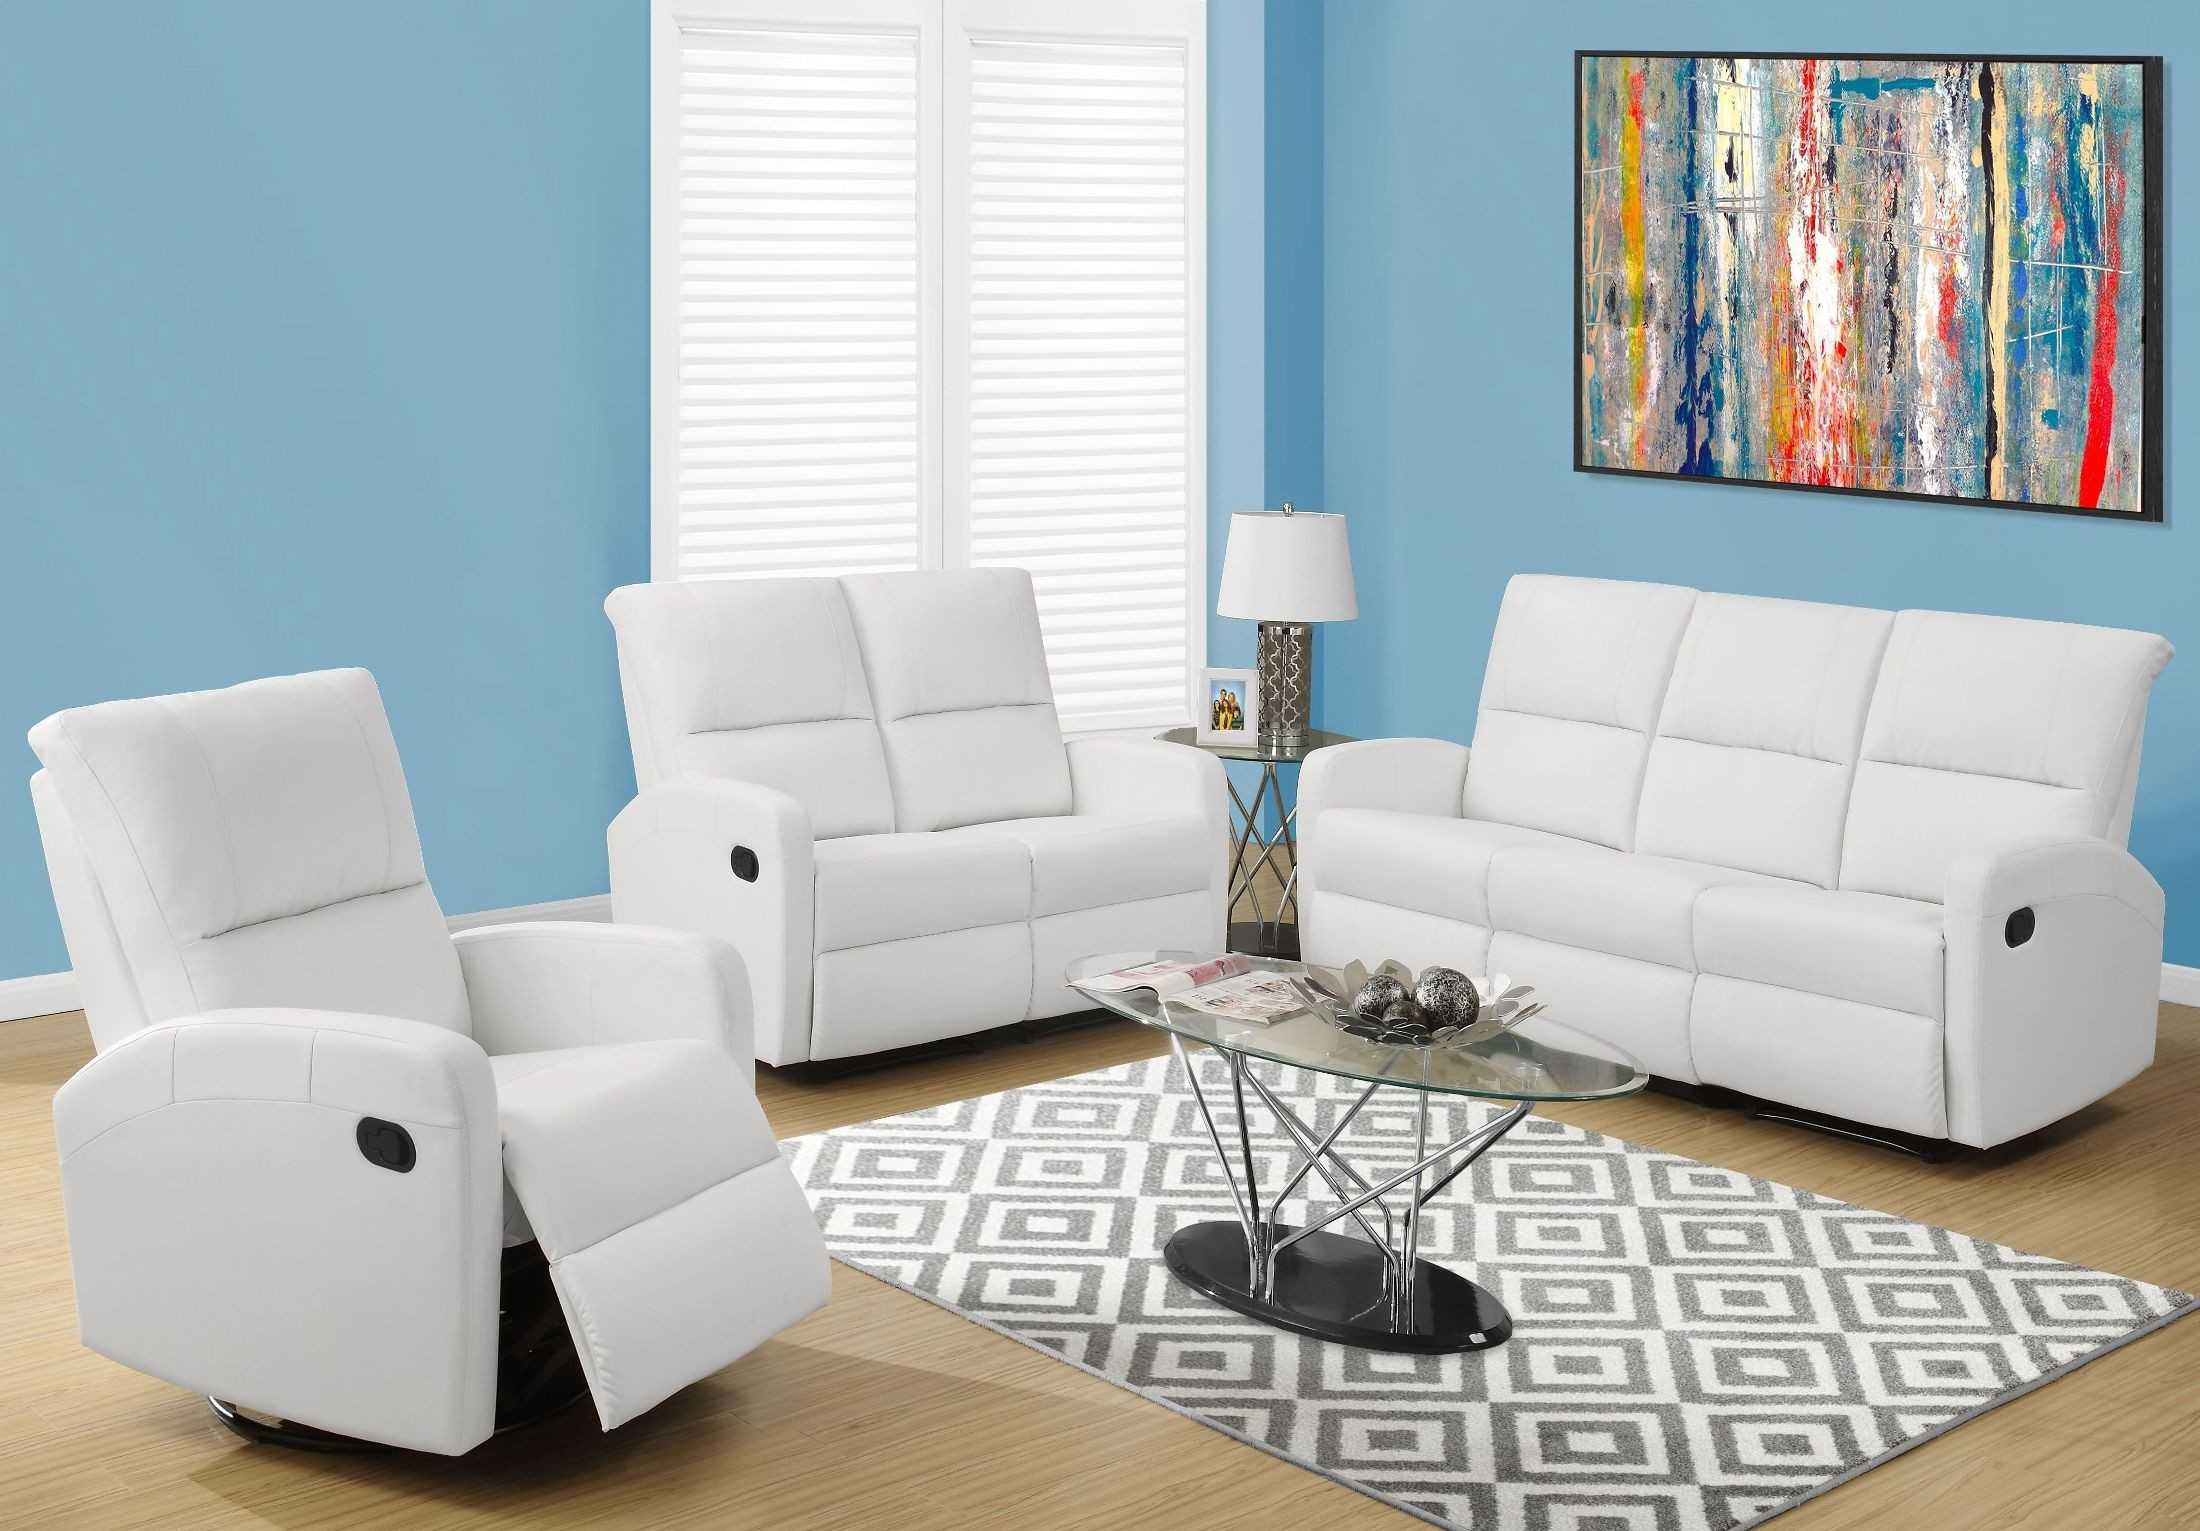 84wh 3 white bonded leather reclining living room set